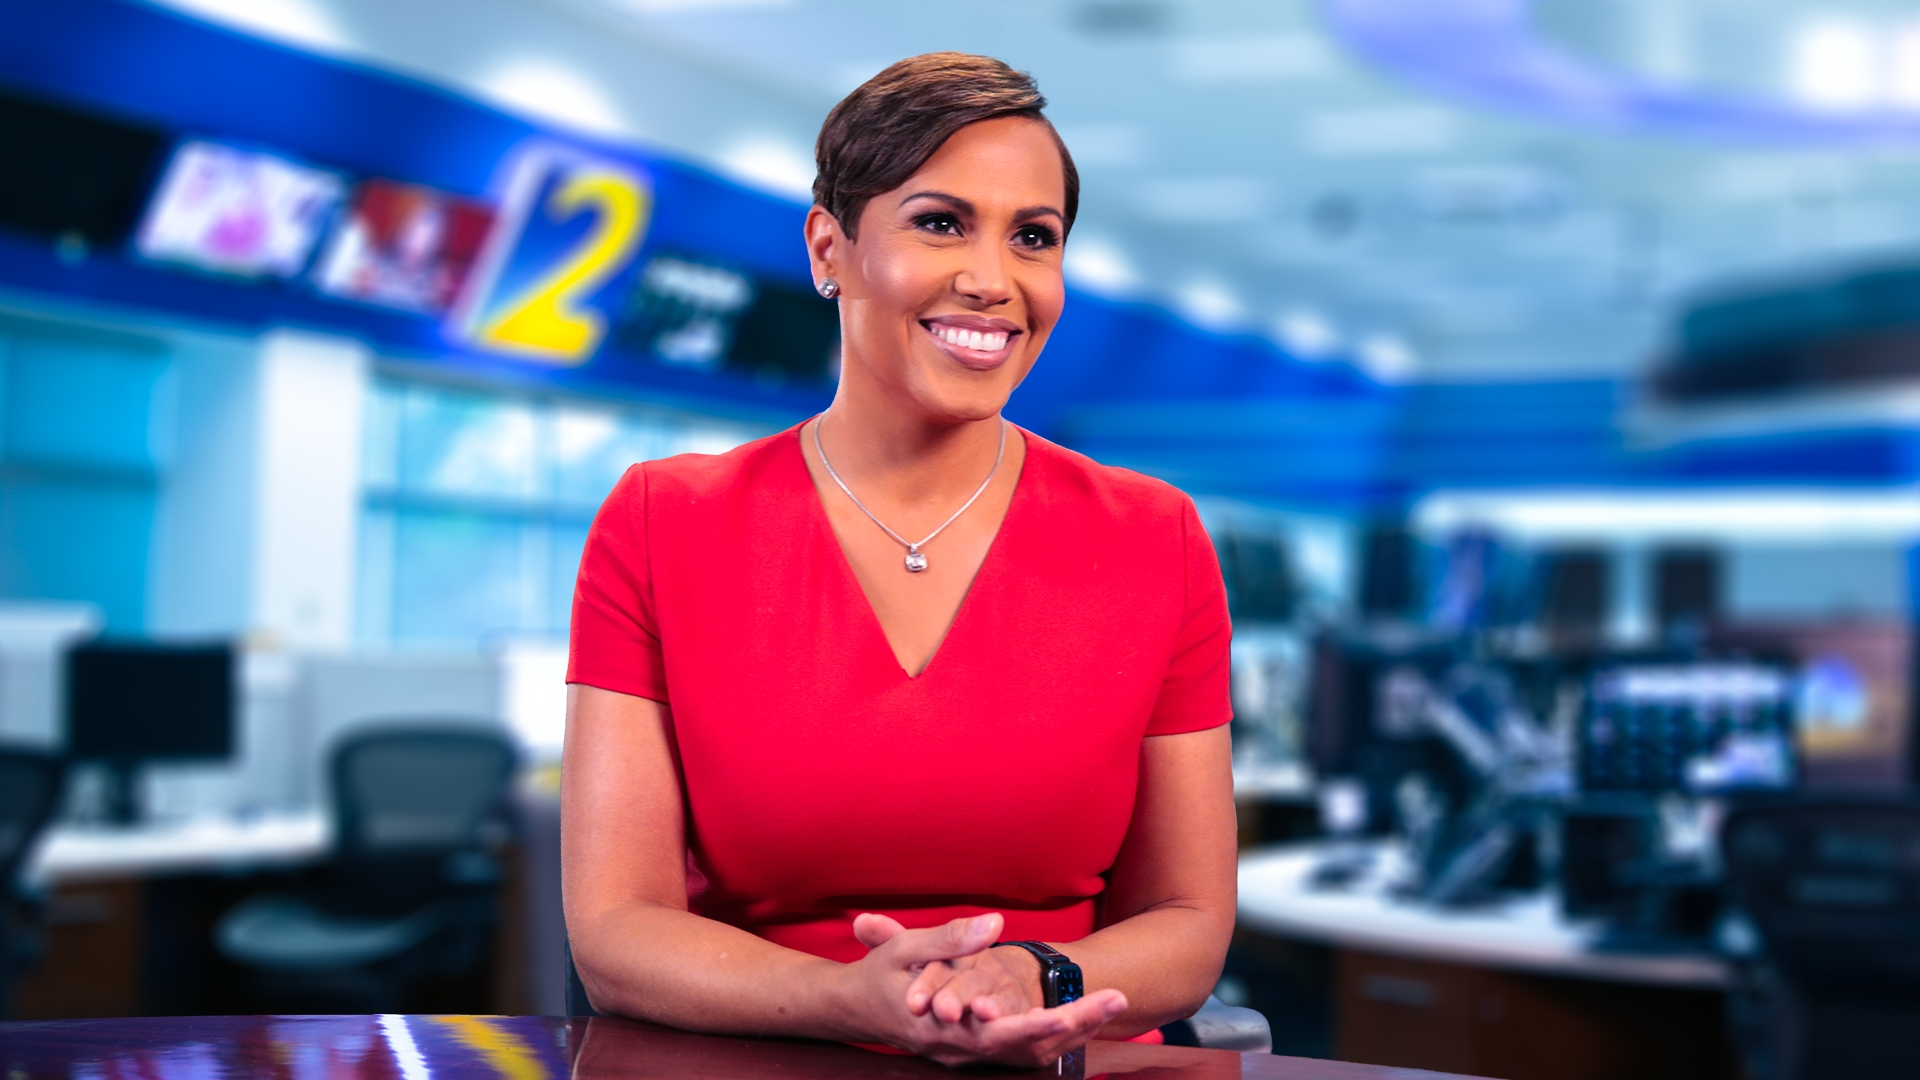 Channel 2's Jovita Moore recovering after surgery for brain tumor